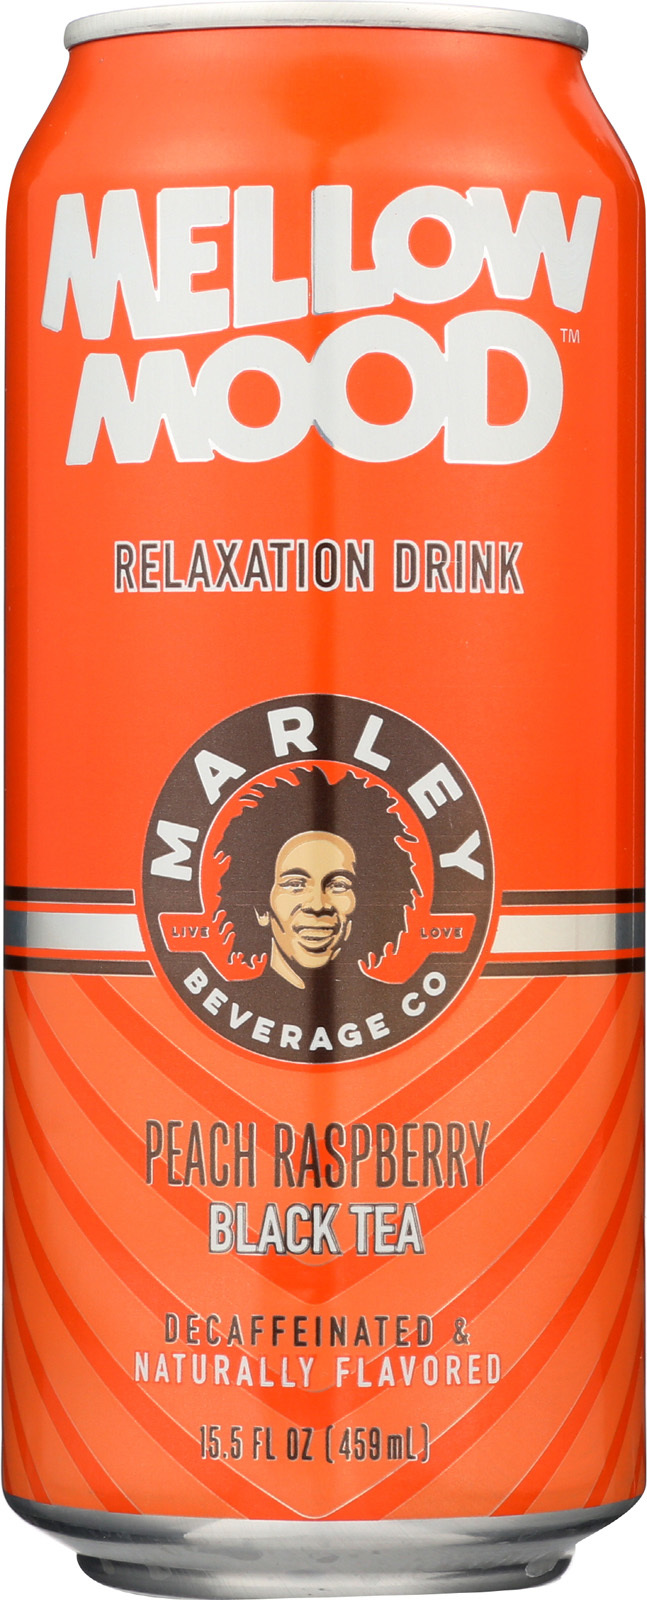 Marley's Mellow Mood Peach Raspberry Black Tea - Case of 12 - 15.5 Fl oz.